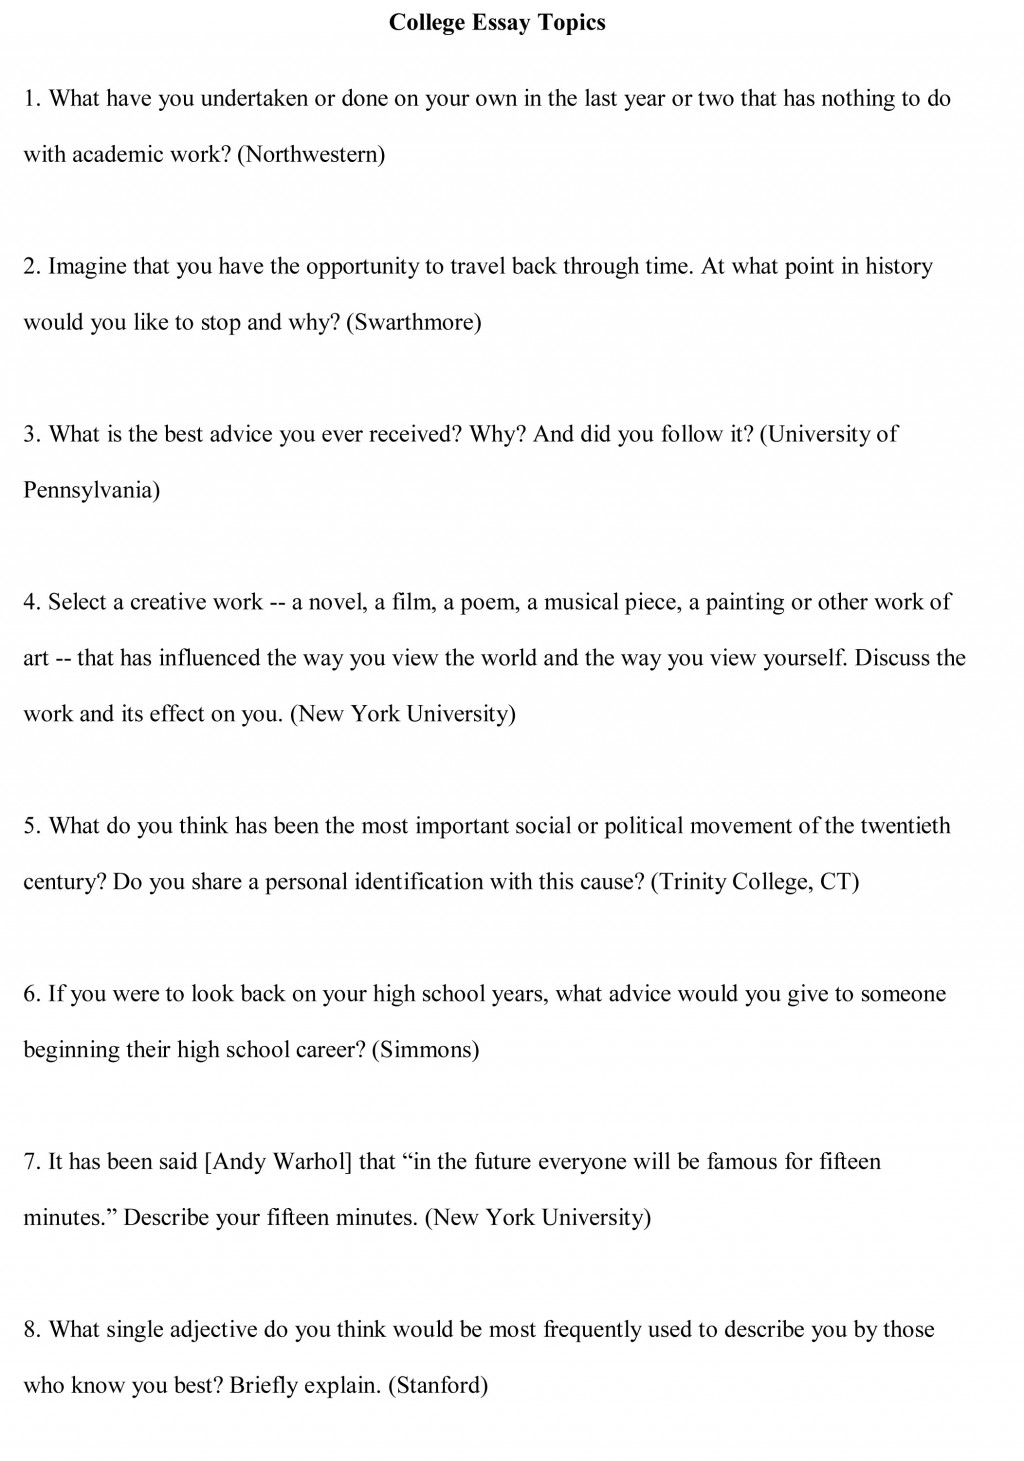 023 College Essay Topics Free Sample About Art Formidable Related To Artificial Intelligence Philosophy Of Argumentative Performing Arts Large